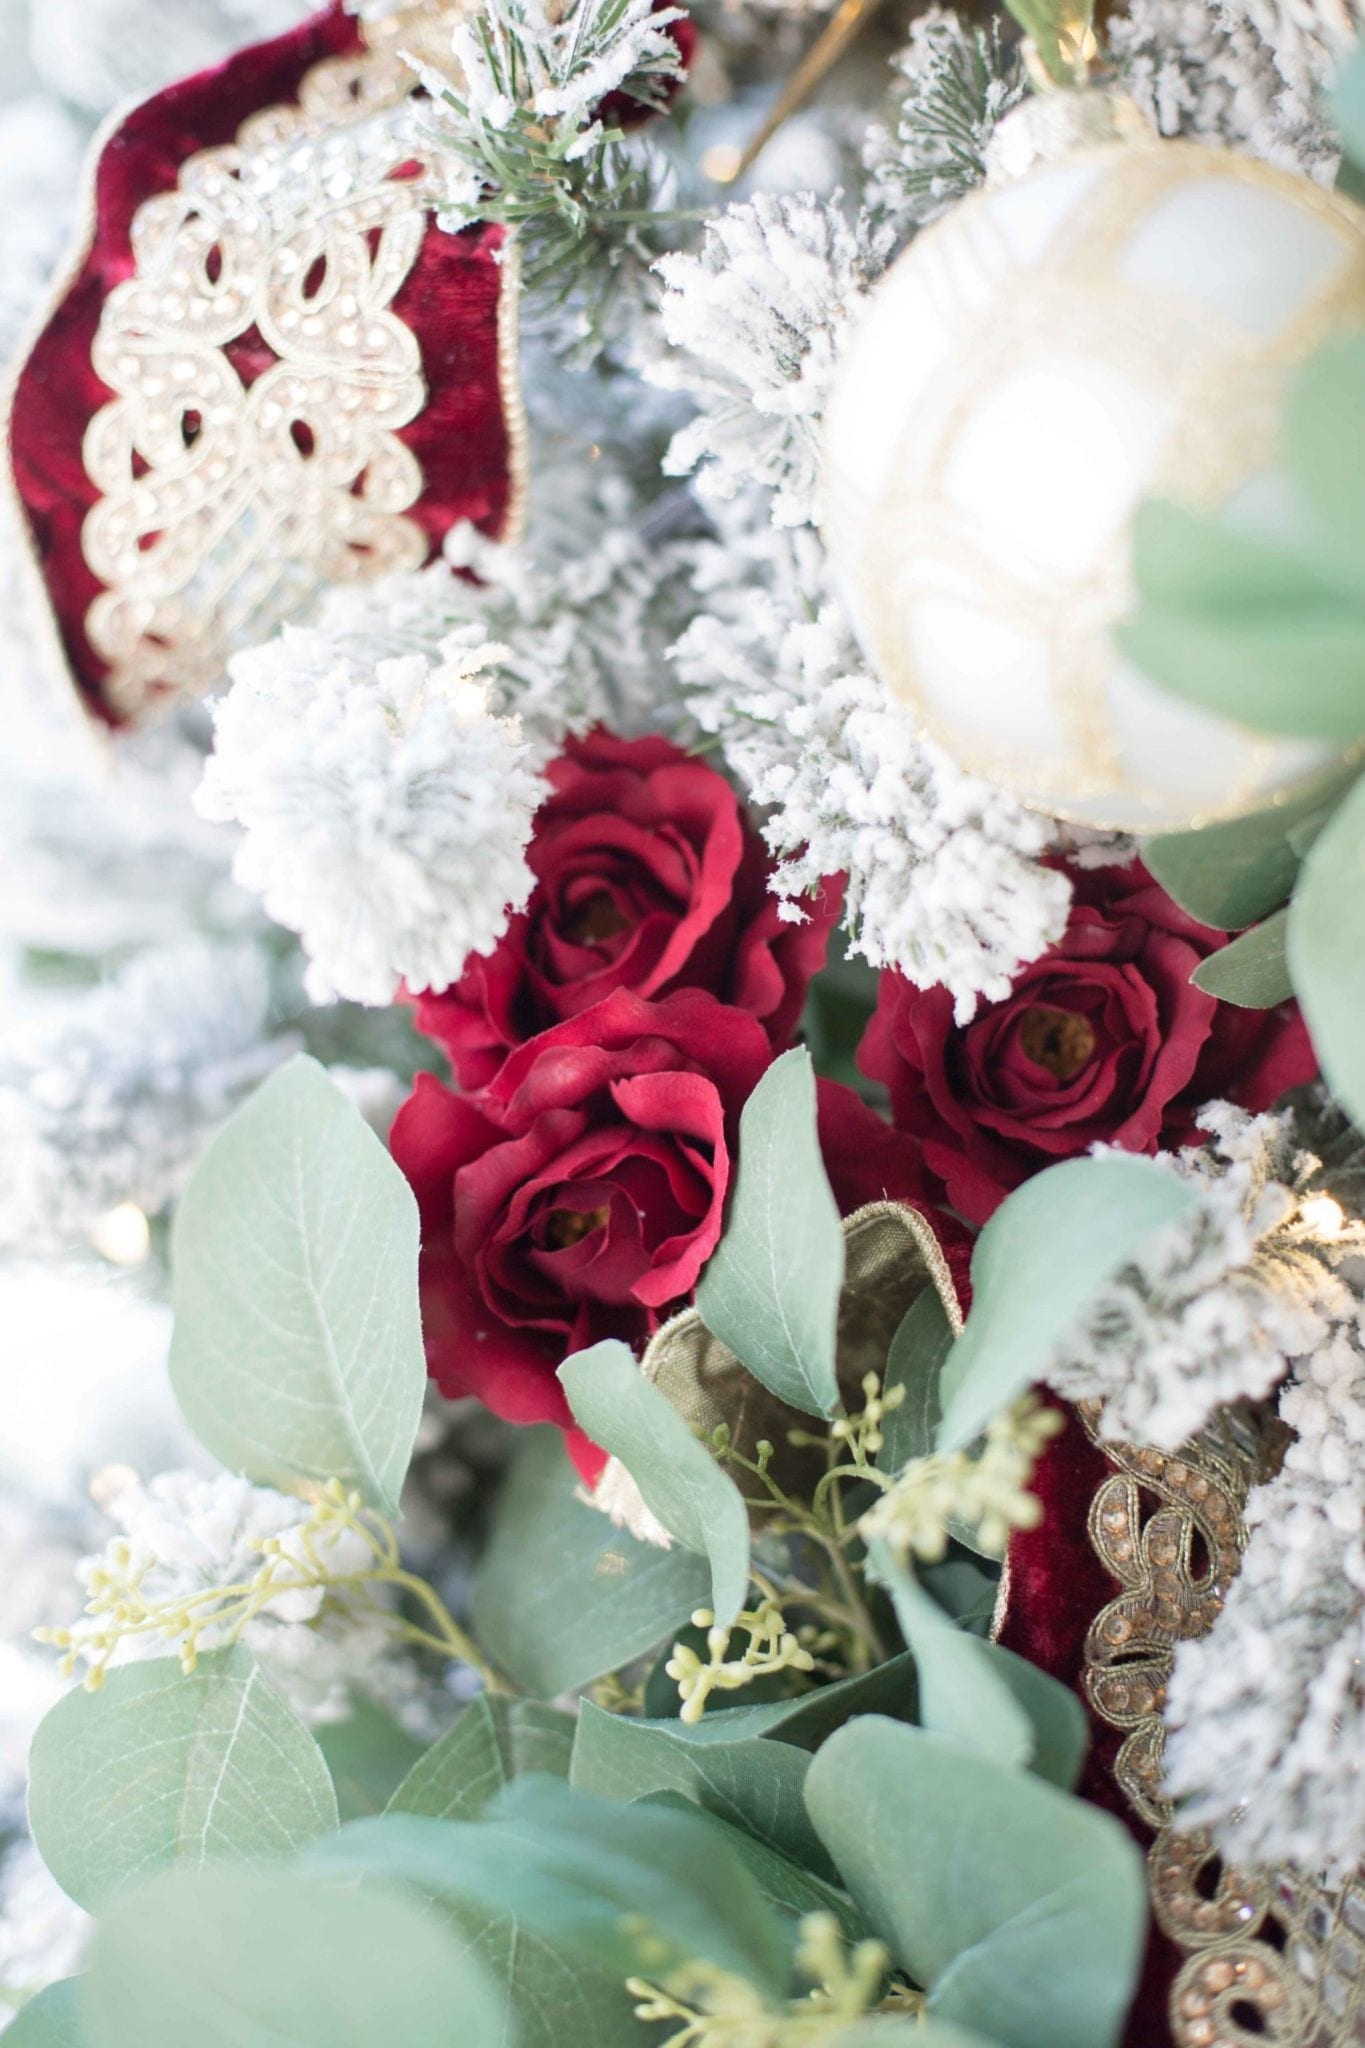 How to use Red Roses for Holiday Decor.